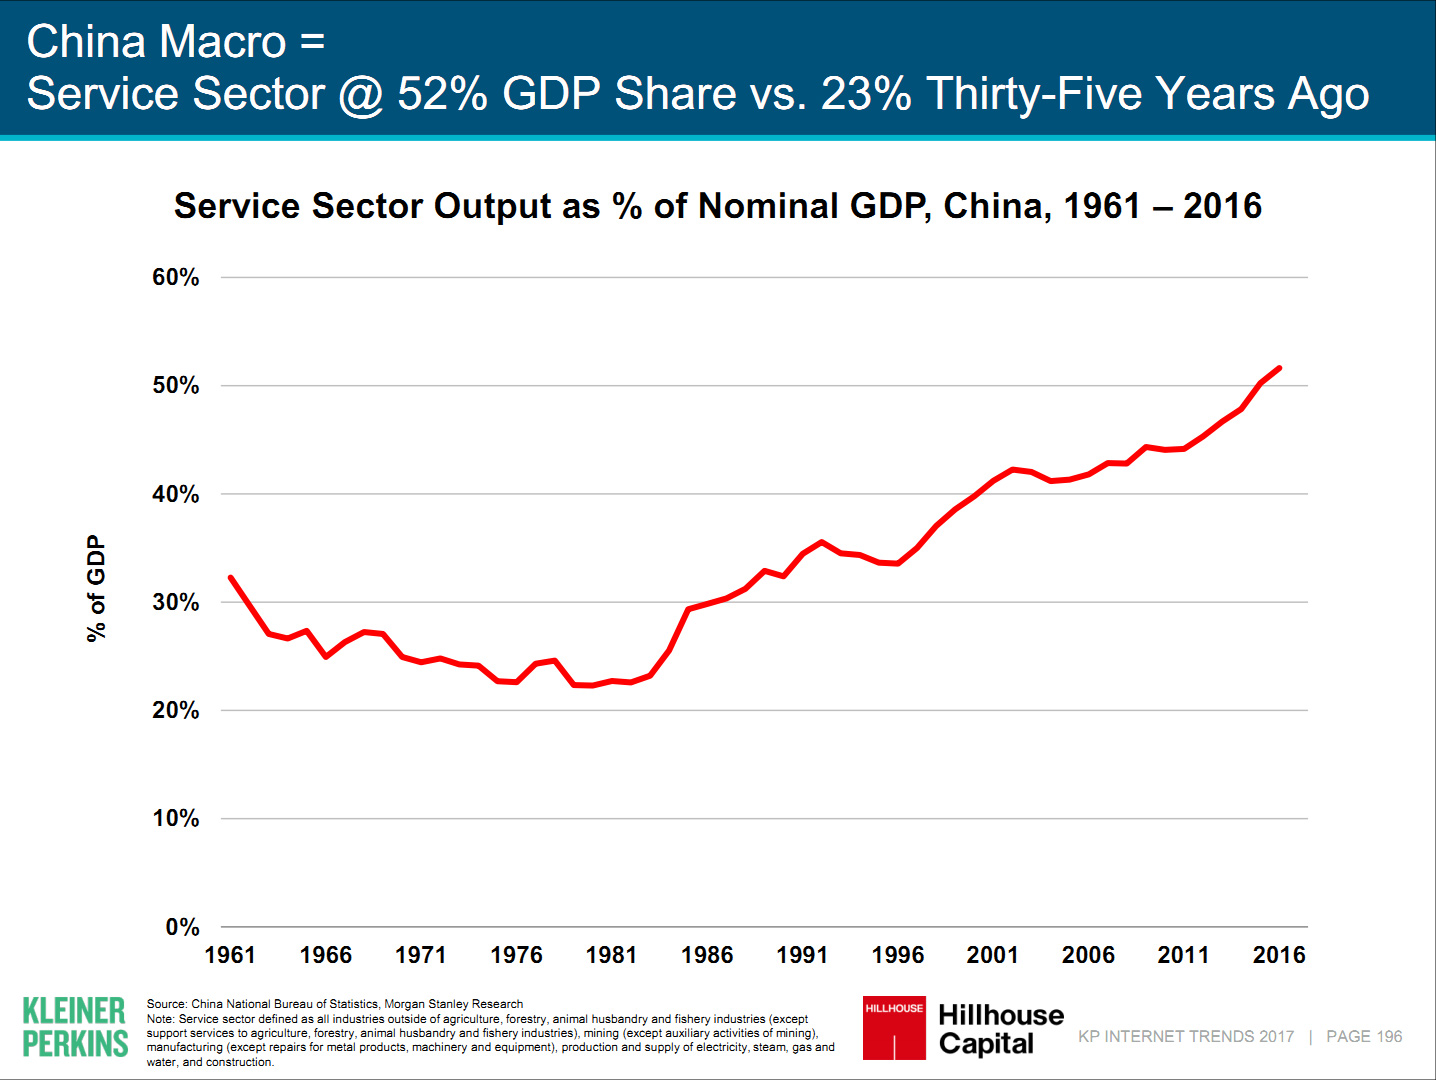 GDP goes hand in hand with internet